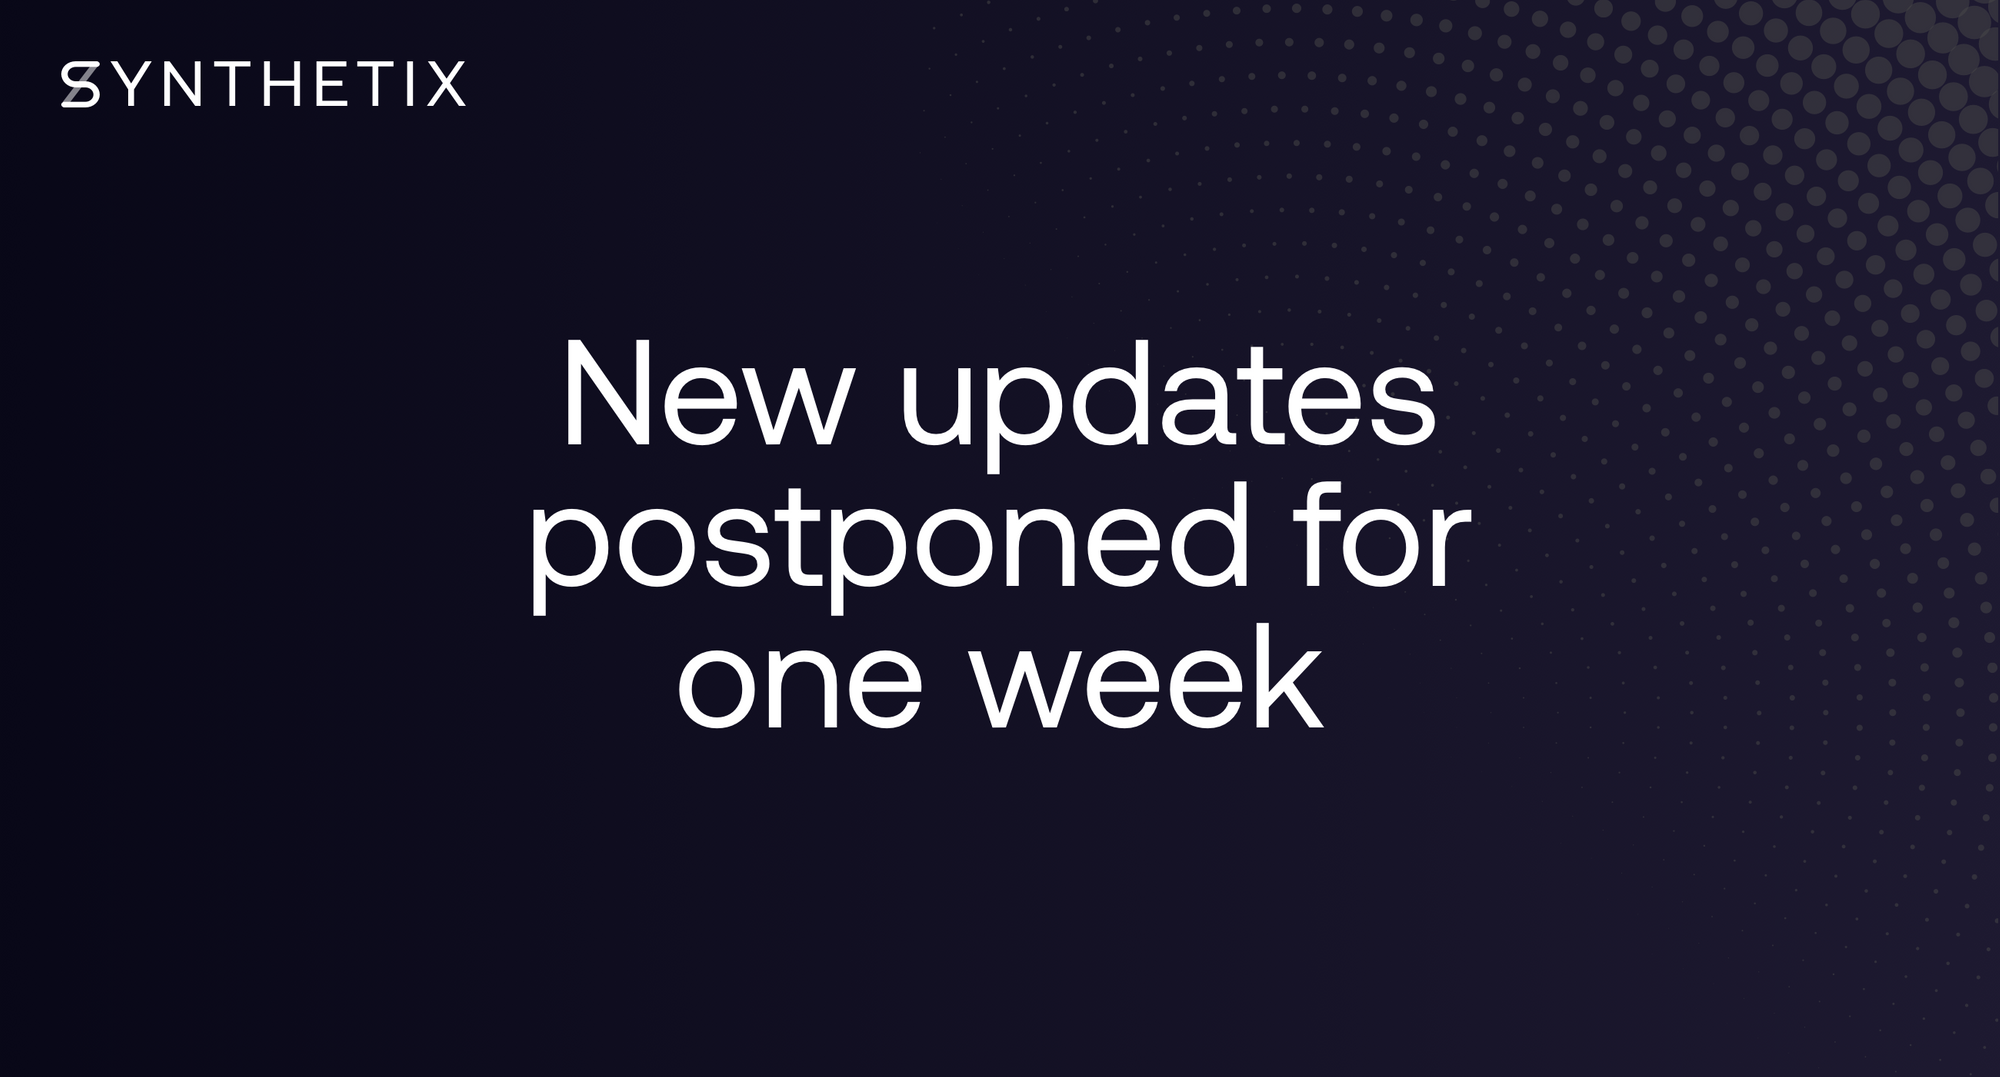 New updates postponed for one week